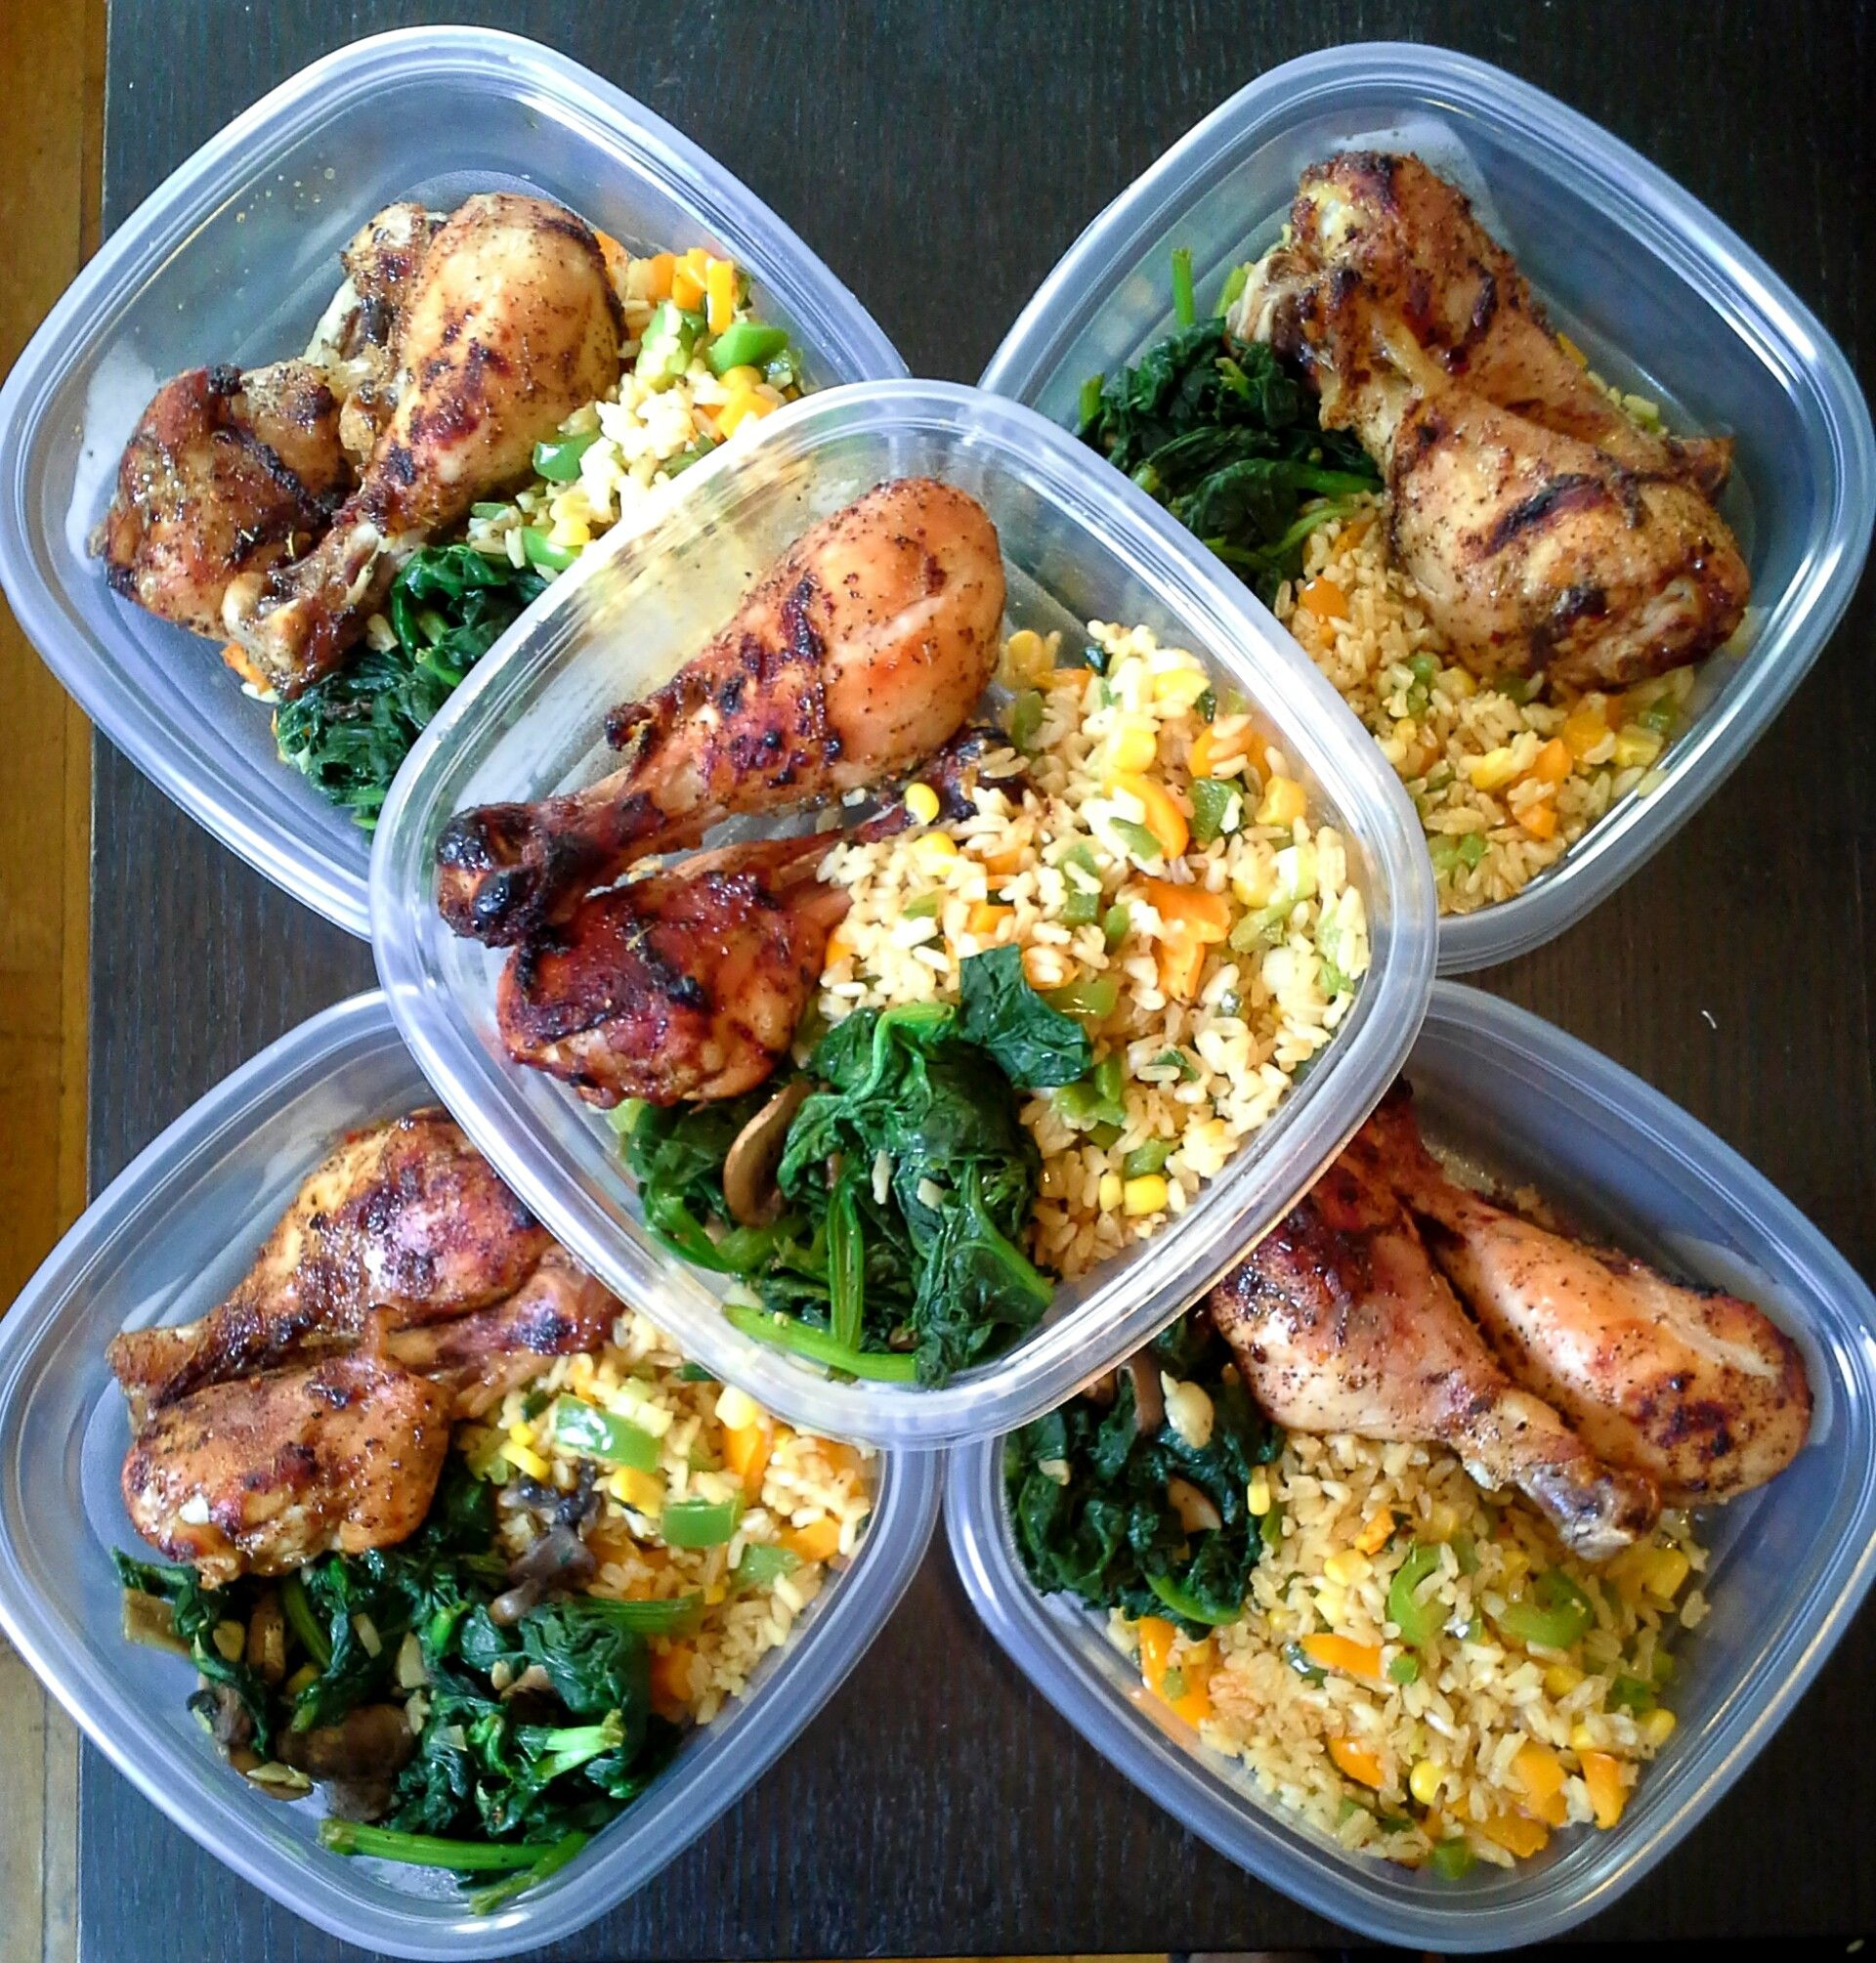 Find This Pin And More On Meal Prep Gallery Packed Lunch Idea: Baked  Chicken